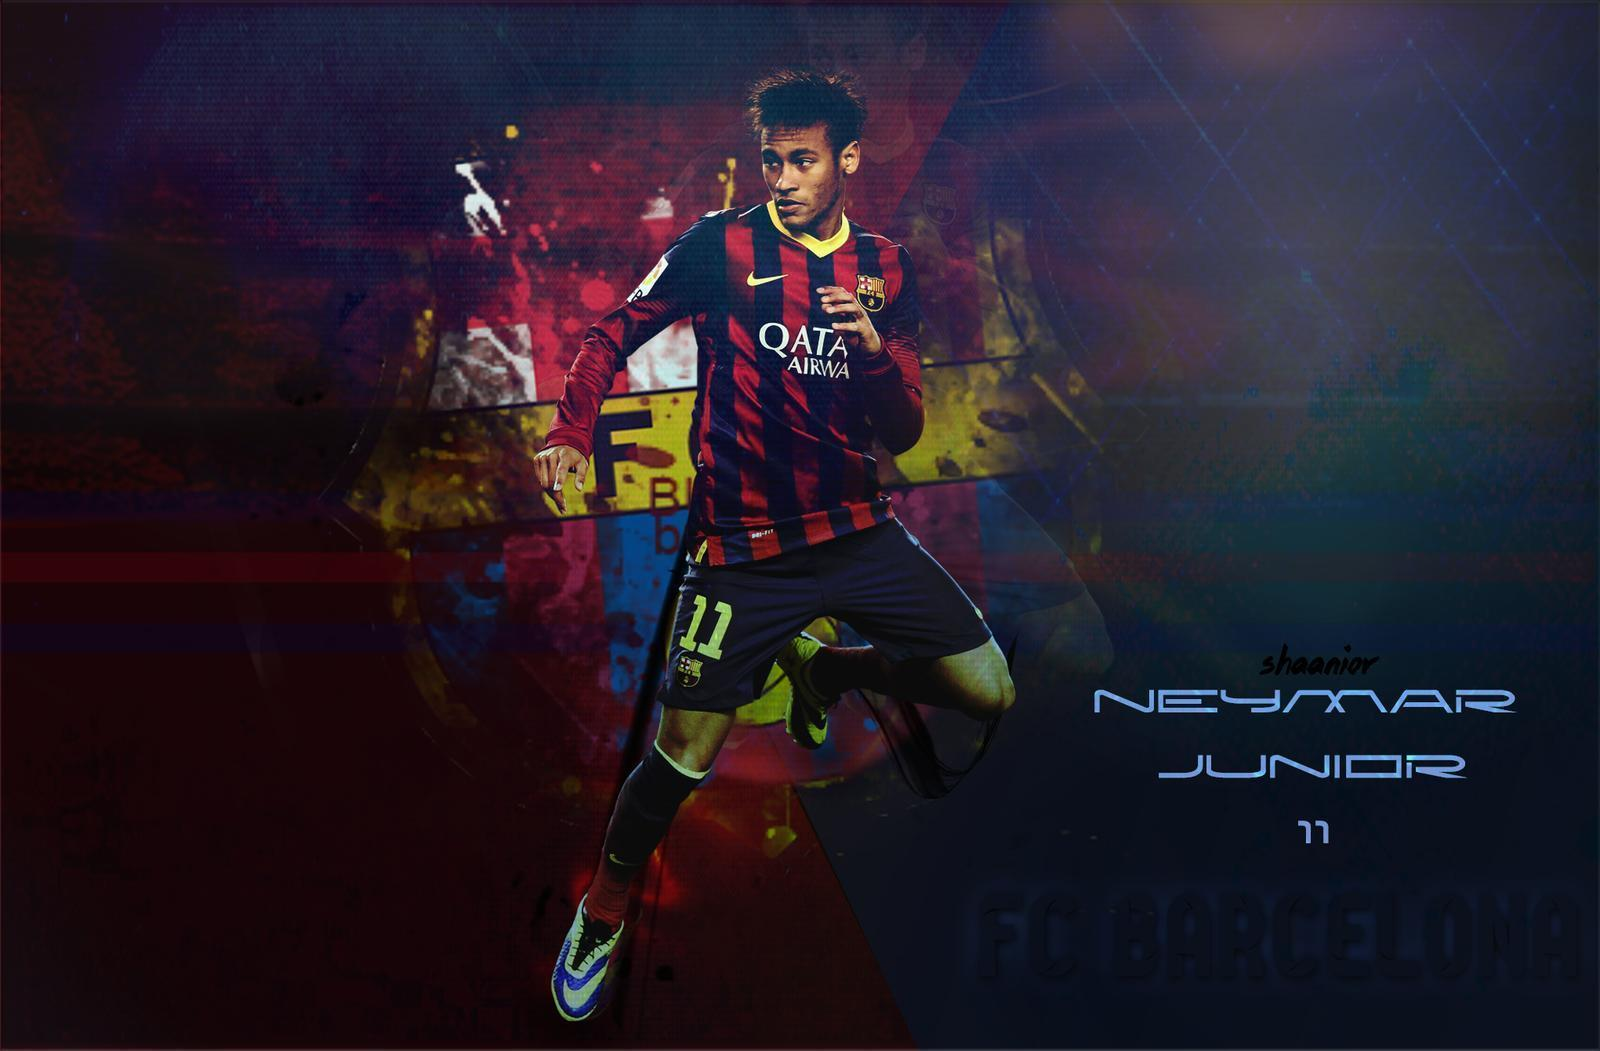 Neymar Jr Wallpapers 2015 Hd Wallpaper Cave